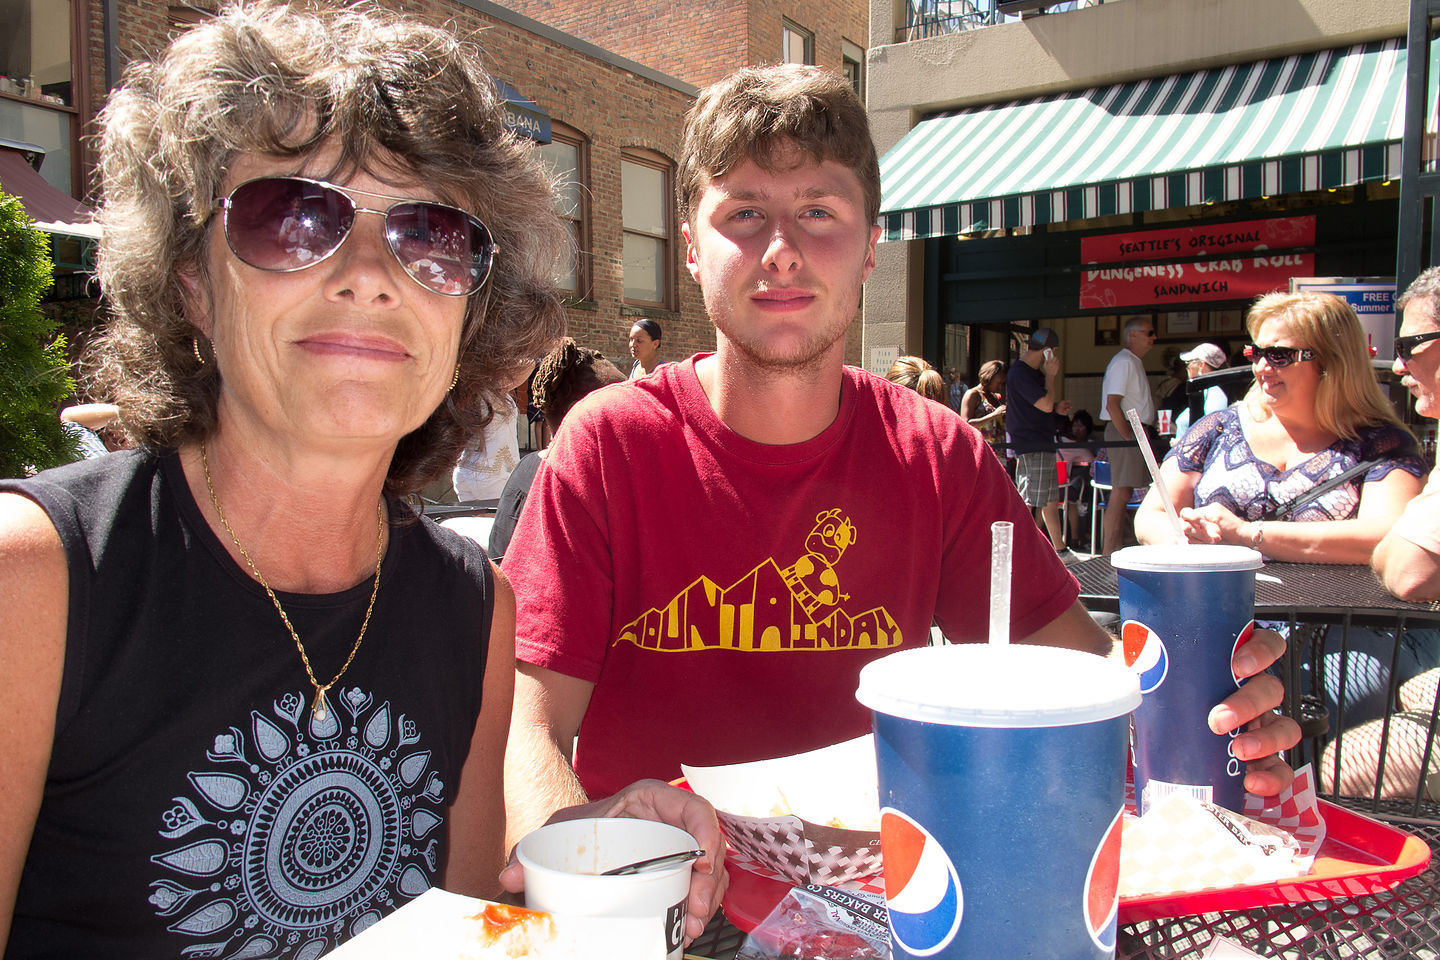 Lolo and Tom dining at Pike Place Chowder